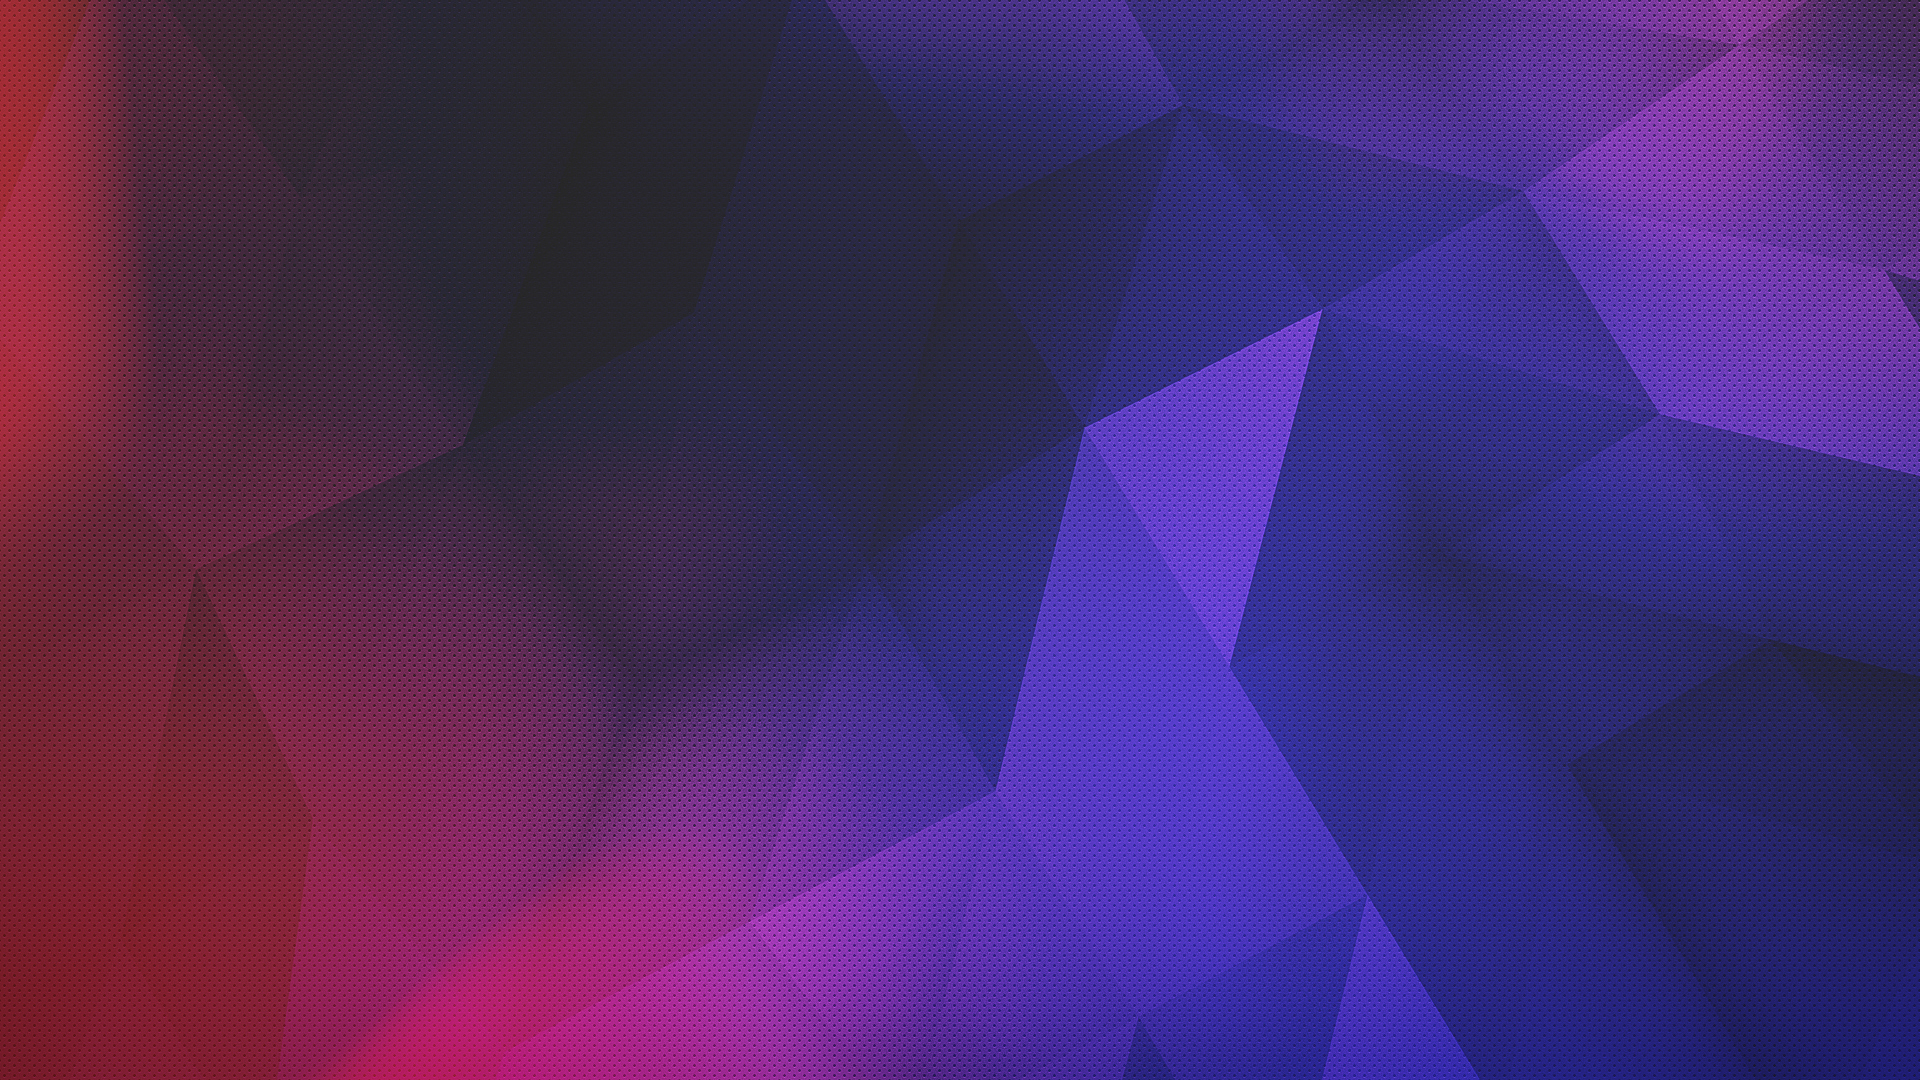 Purple Polygonal Abstract Background: 20+ Spendid Purple Backgrounds For Free Download